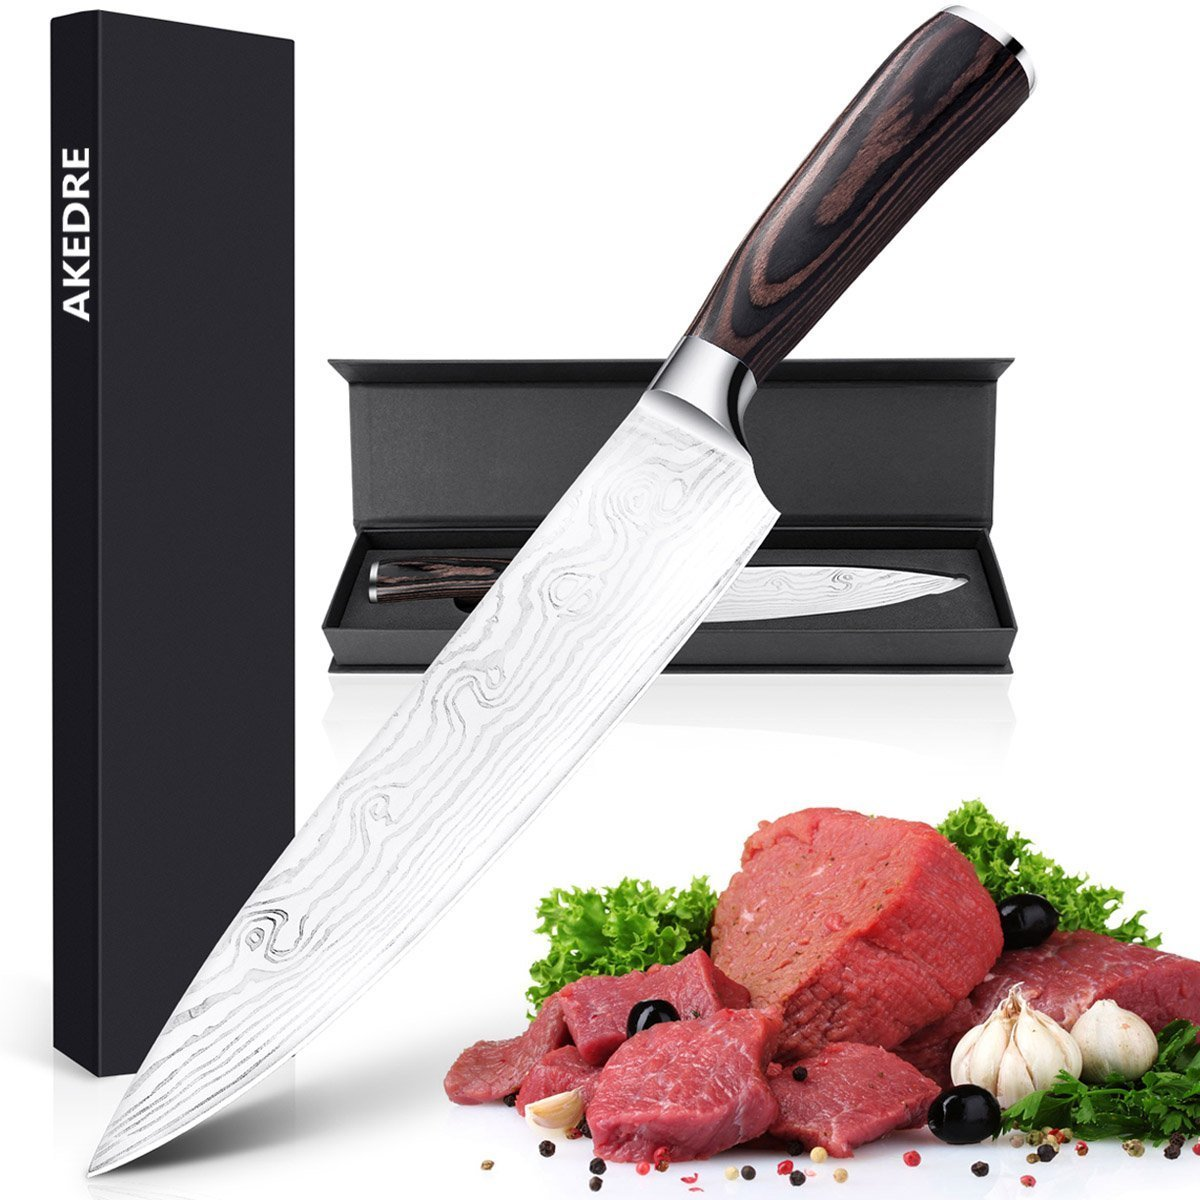 Wewdigi Chef Kitchen Knife with Stainless Steel Razor Sharp Blade and Ergonomic Handle with pattern (6X18)